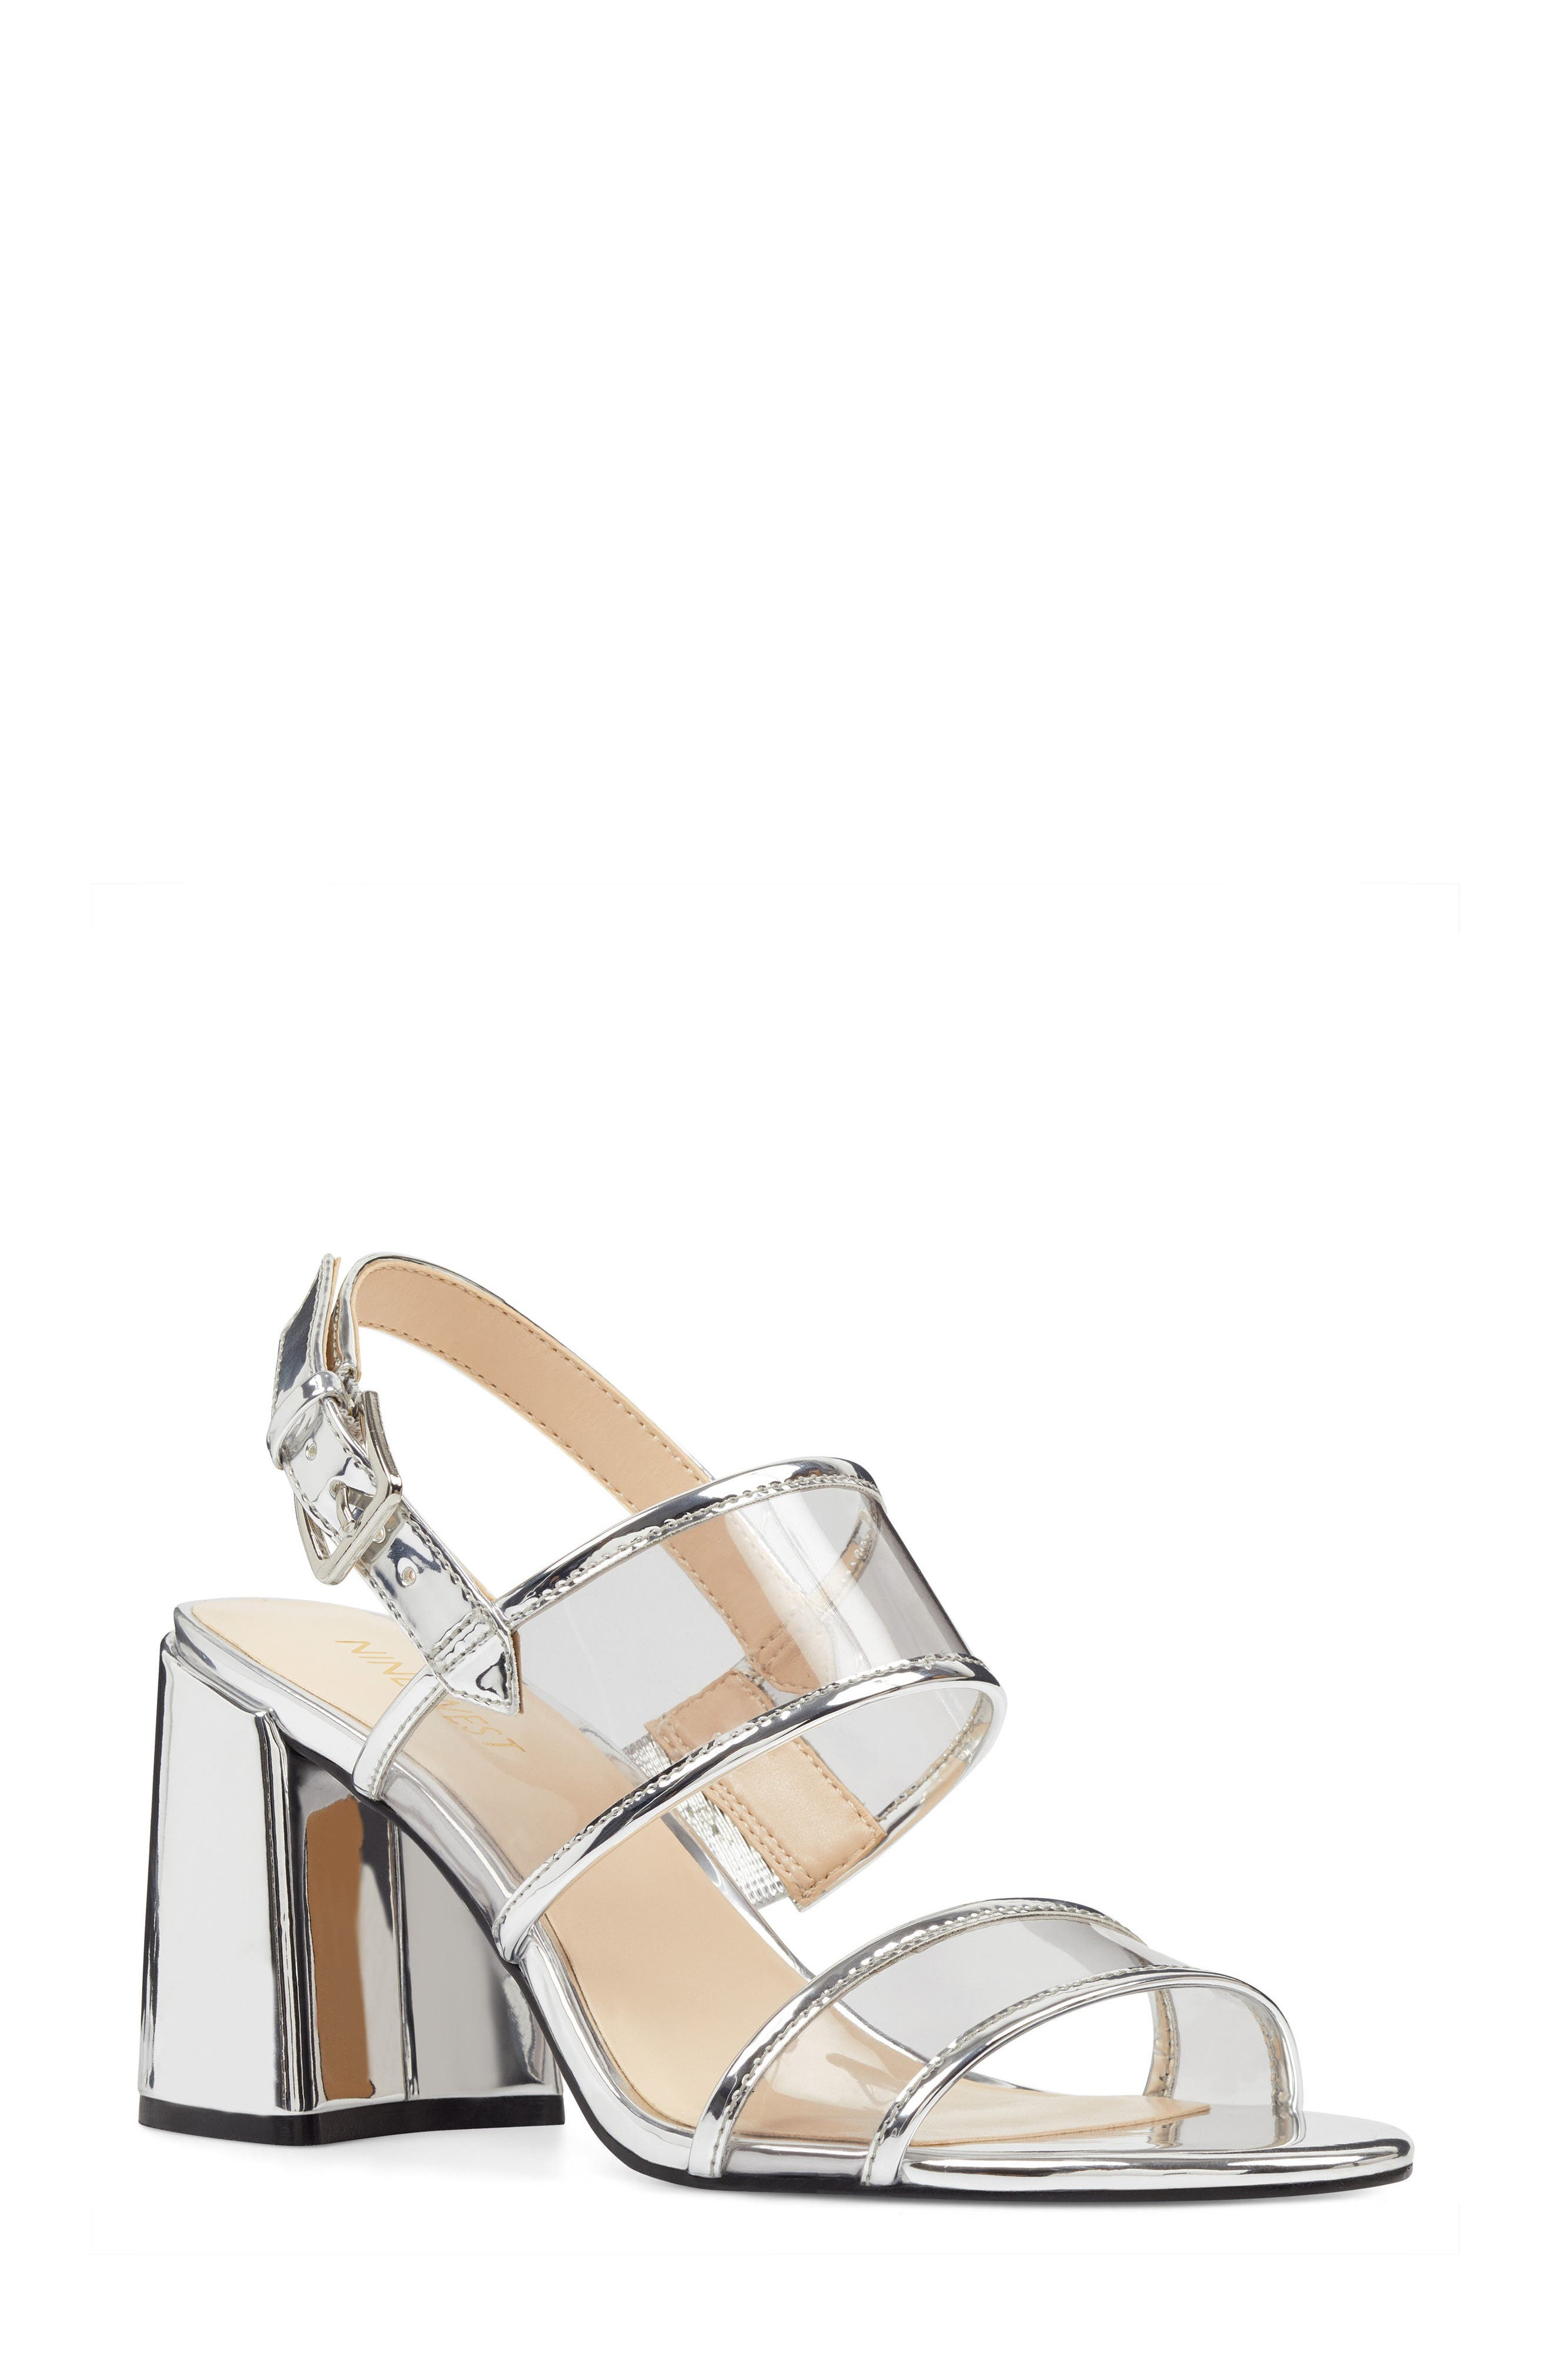 Gourdes Block Heel Sandal,                             Main thumbnail 1, color,                             Clear Grey Multi Faux Leather